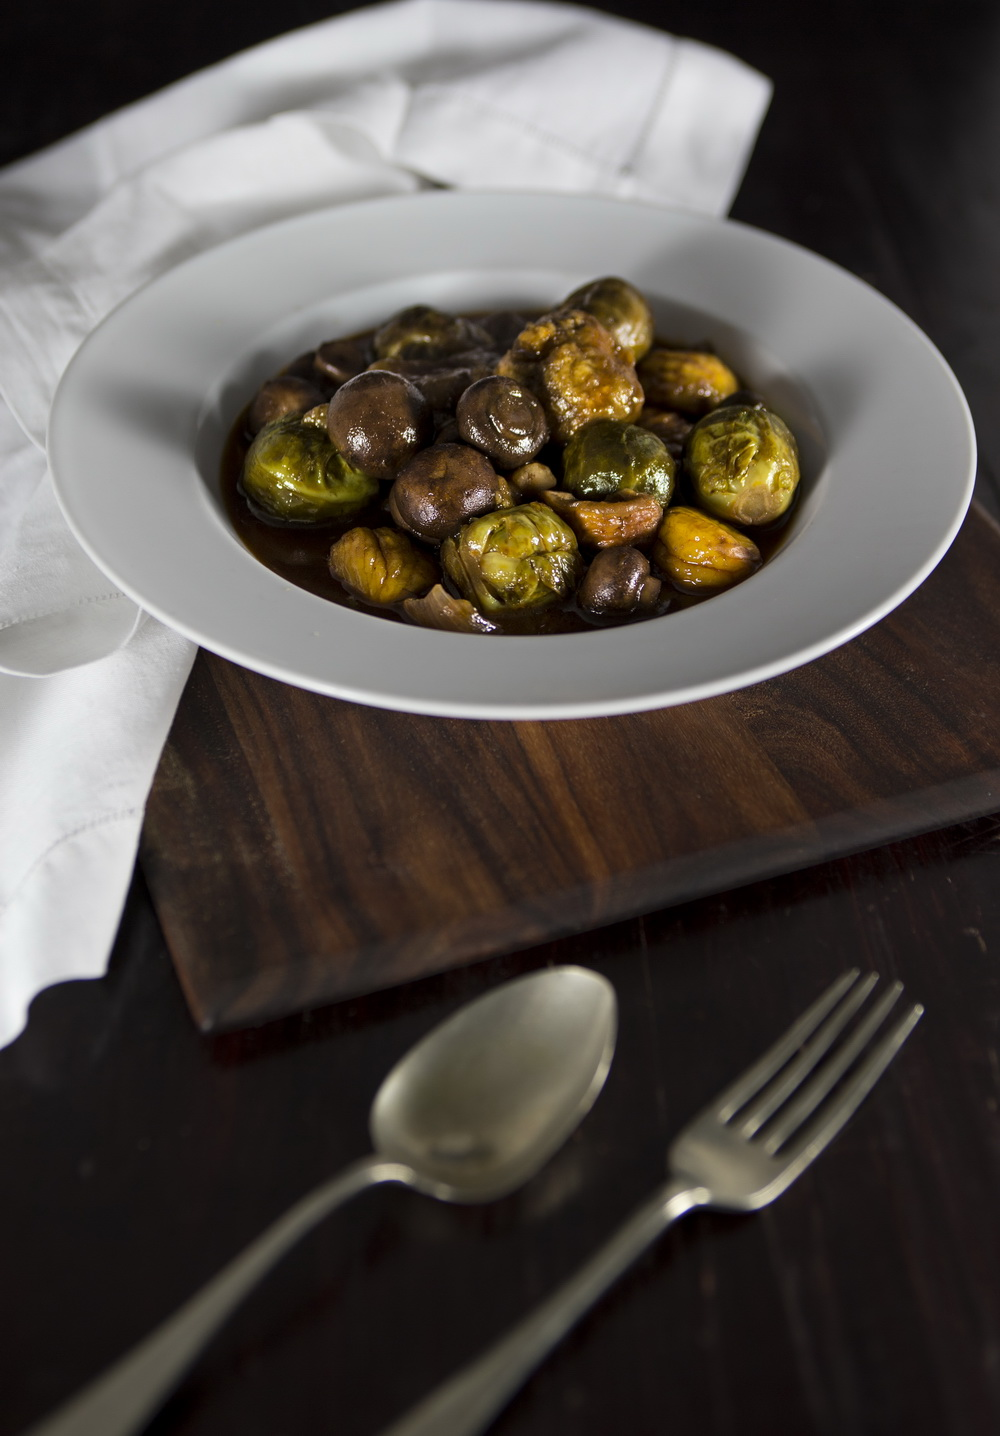 The Urban Nest Chestnut and Vegetable Casserole